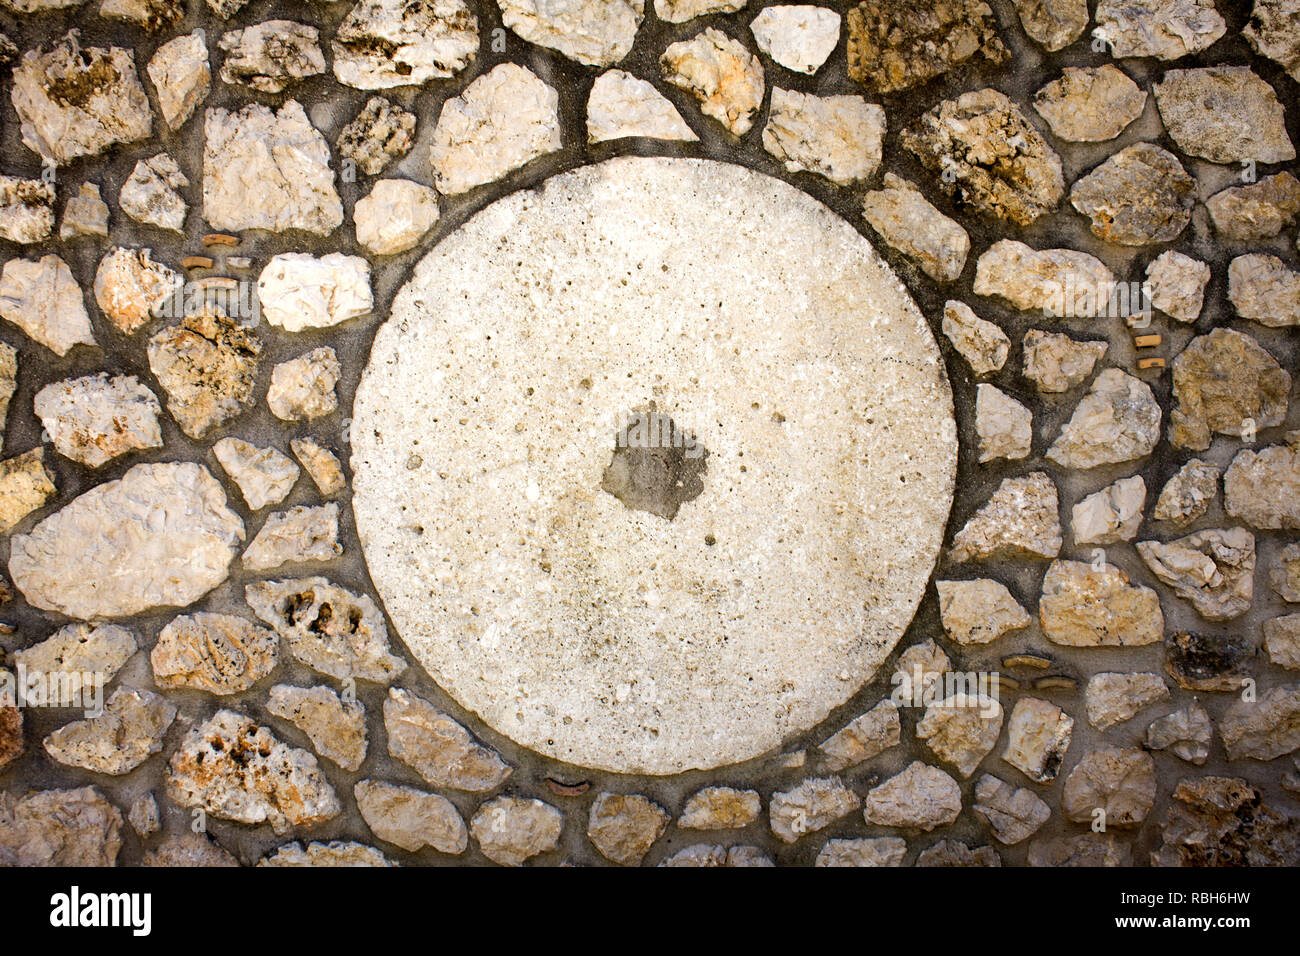 White Cemented Round Shape With Hole In Center Big Circle Design